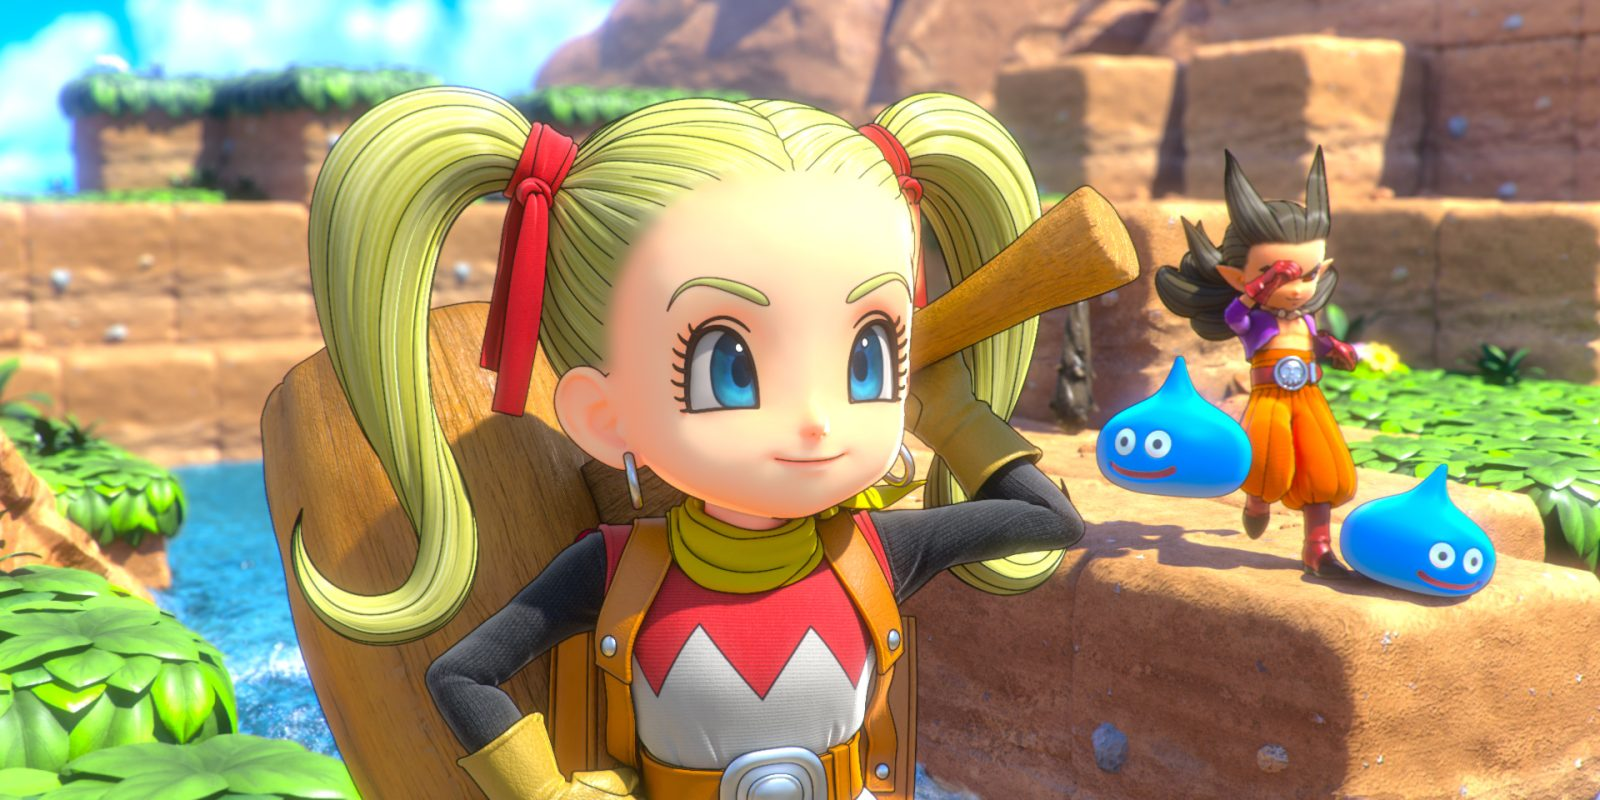 Today's Best Game Deals: Dragon Quest Builders 2 $45, Contra Collection $10, more